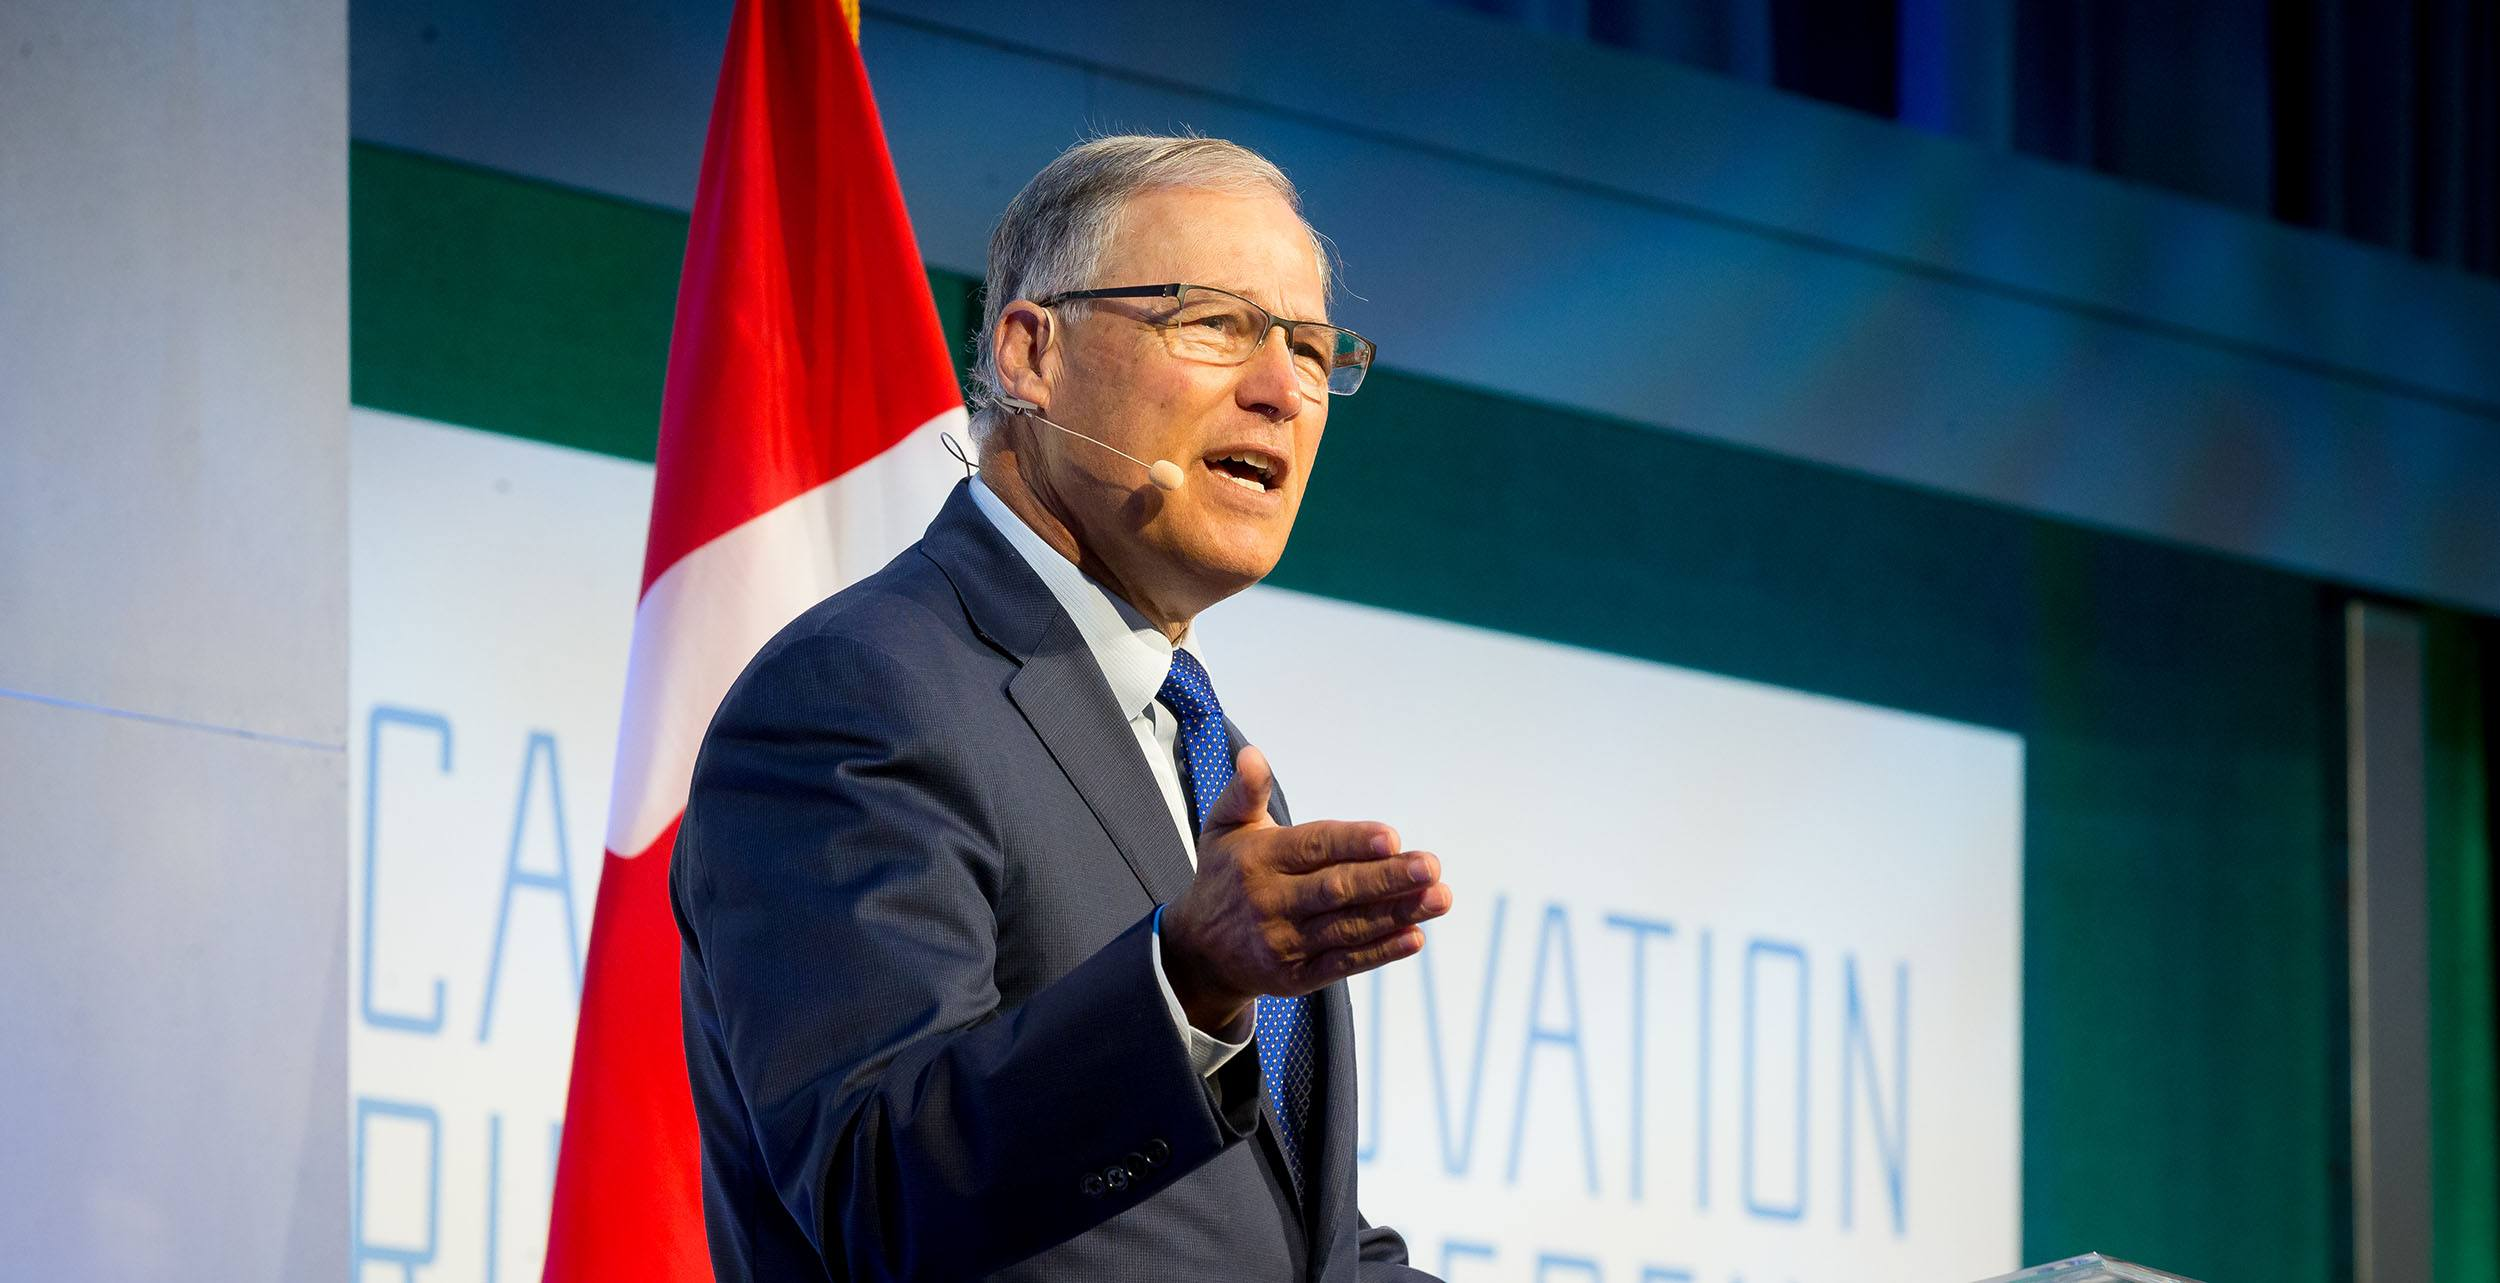 Washington governor: I'm worried about Trump and the tech industry